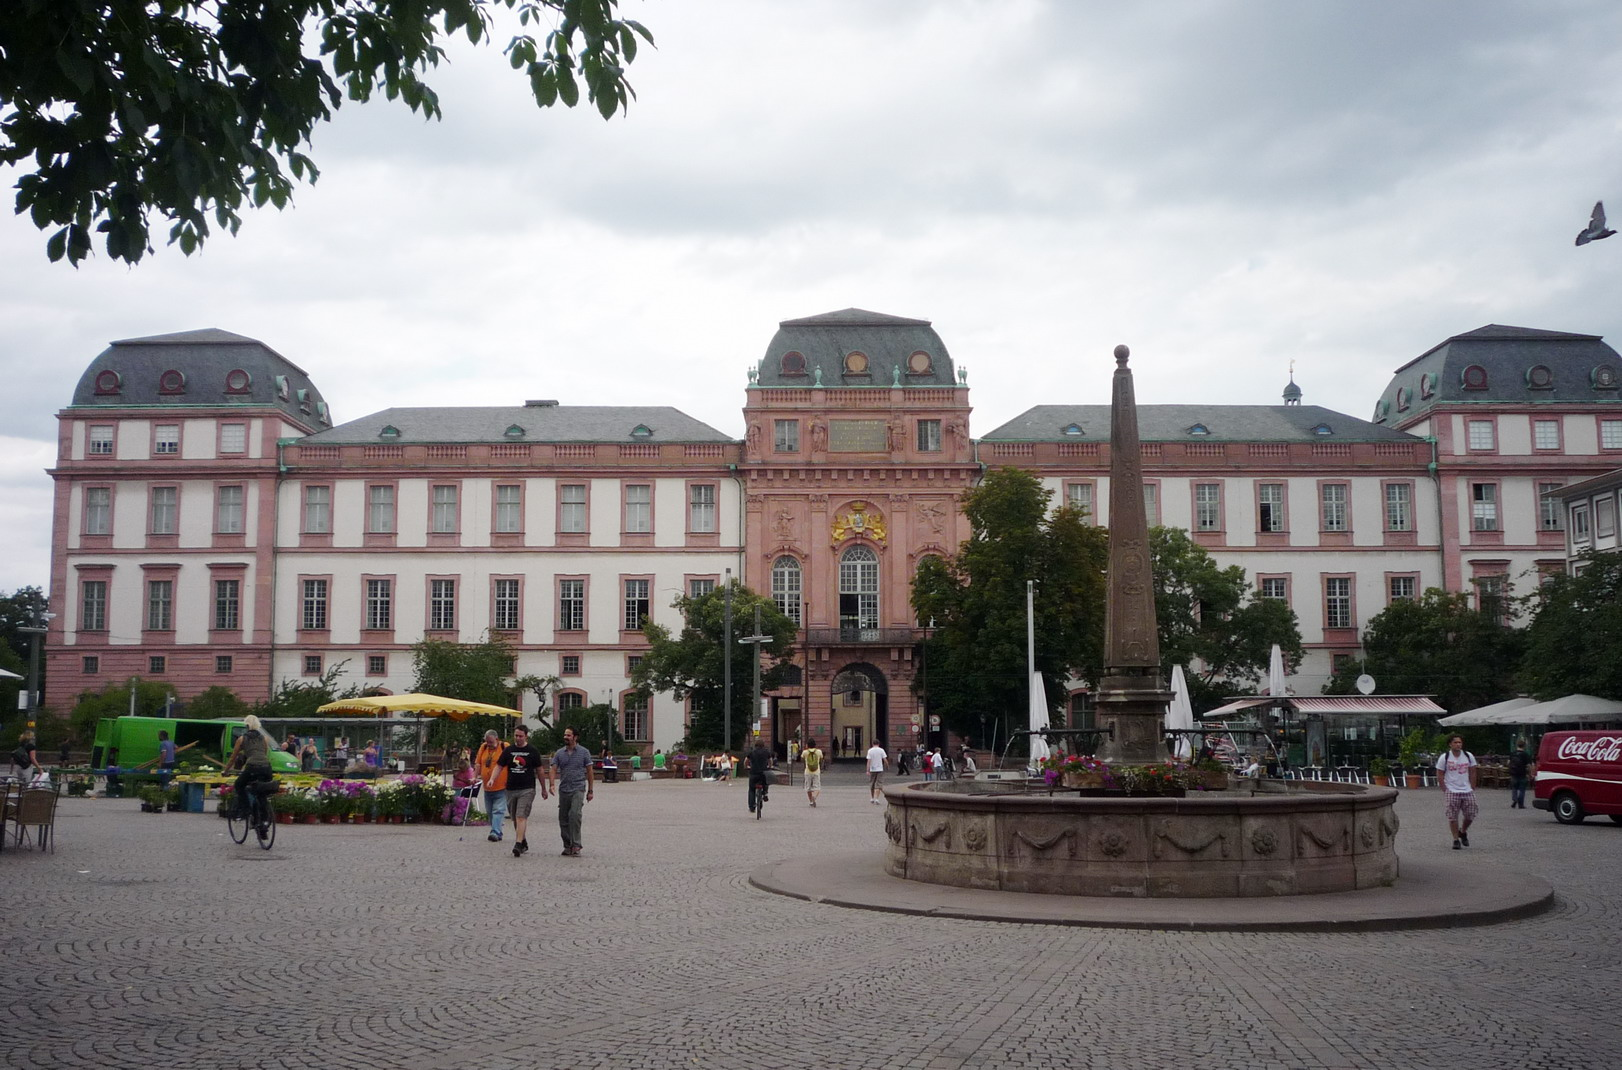 """Residenzschloss Darmstadt 539-Gdh"" by Pedelecs - http://www.wikivoyage-old.org/de/Bild:Residenzschloss_Darmstadt_539-Gdh.JPG. Licensed under CC BY-SA 3.0 via Wikimedia Commons - https://commons.wikimedia.org/wiki/File:Residenzschloss_Darmstadt_539-Gdh.JPG#/media/File:Residenzschloss_Darmstadt_539-Gdh.JPG"